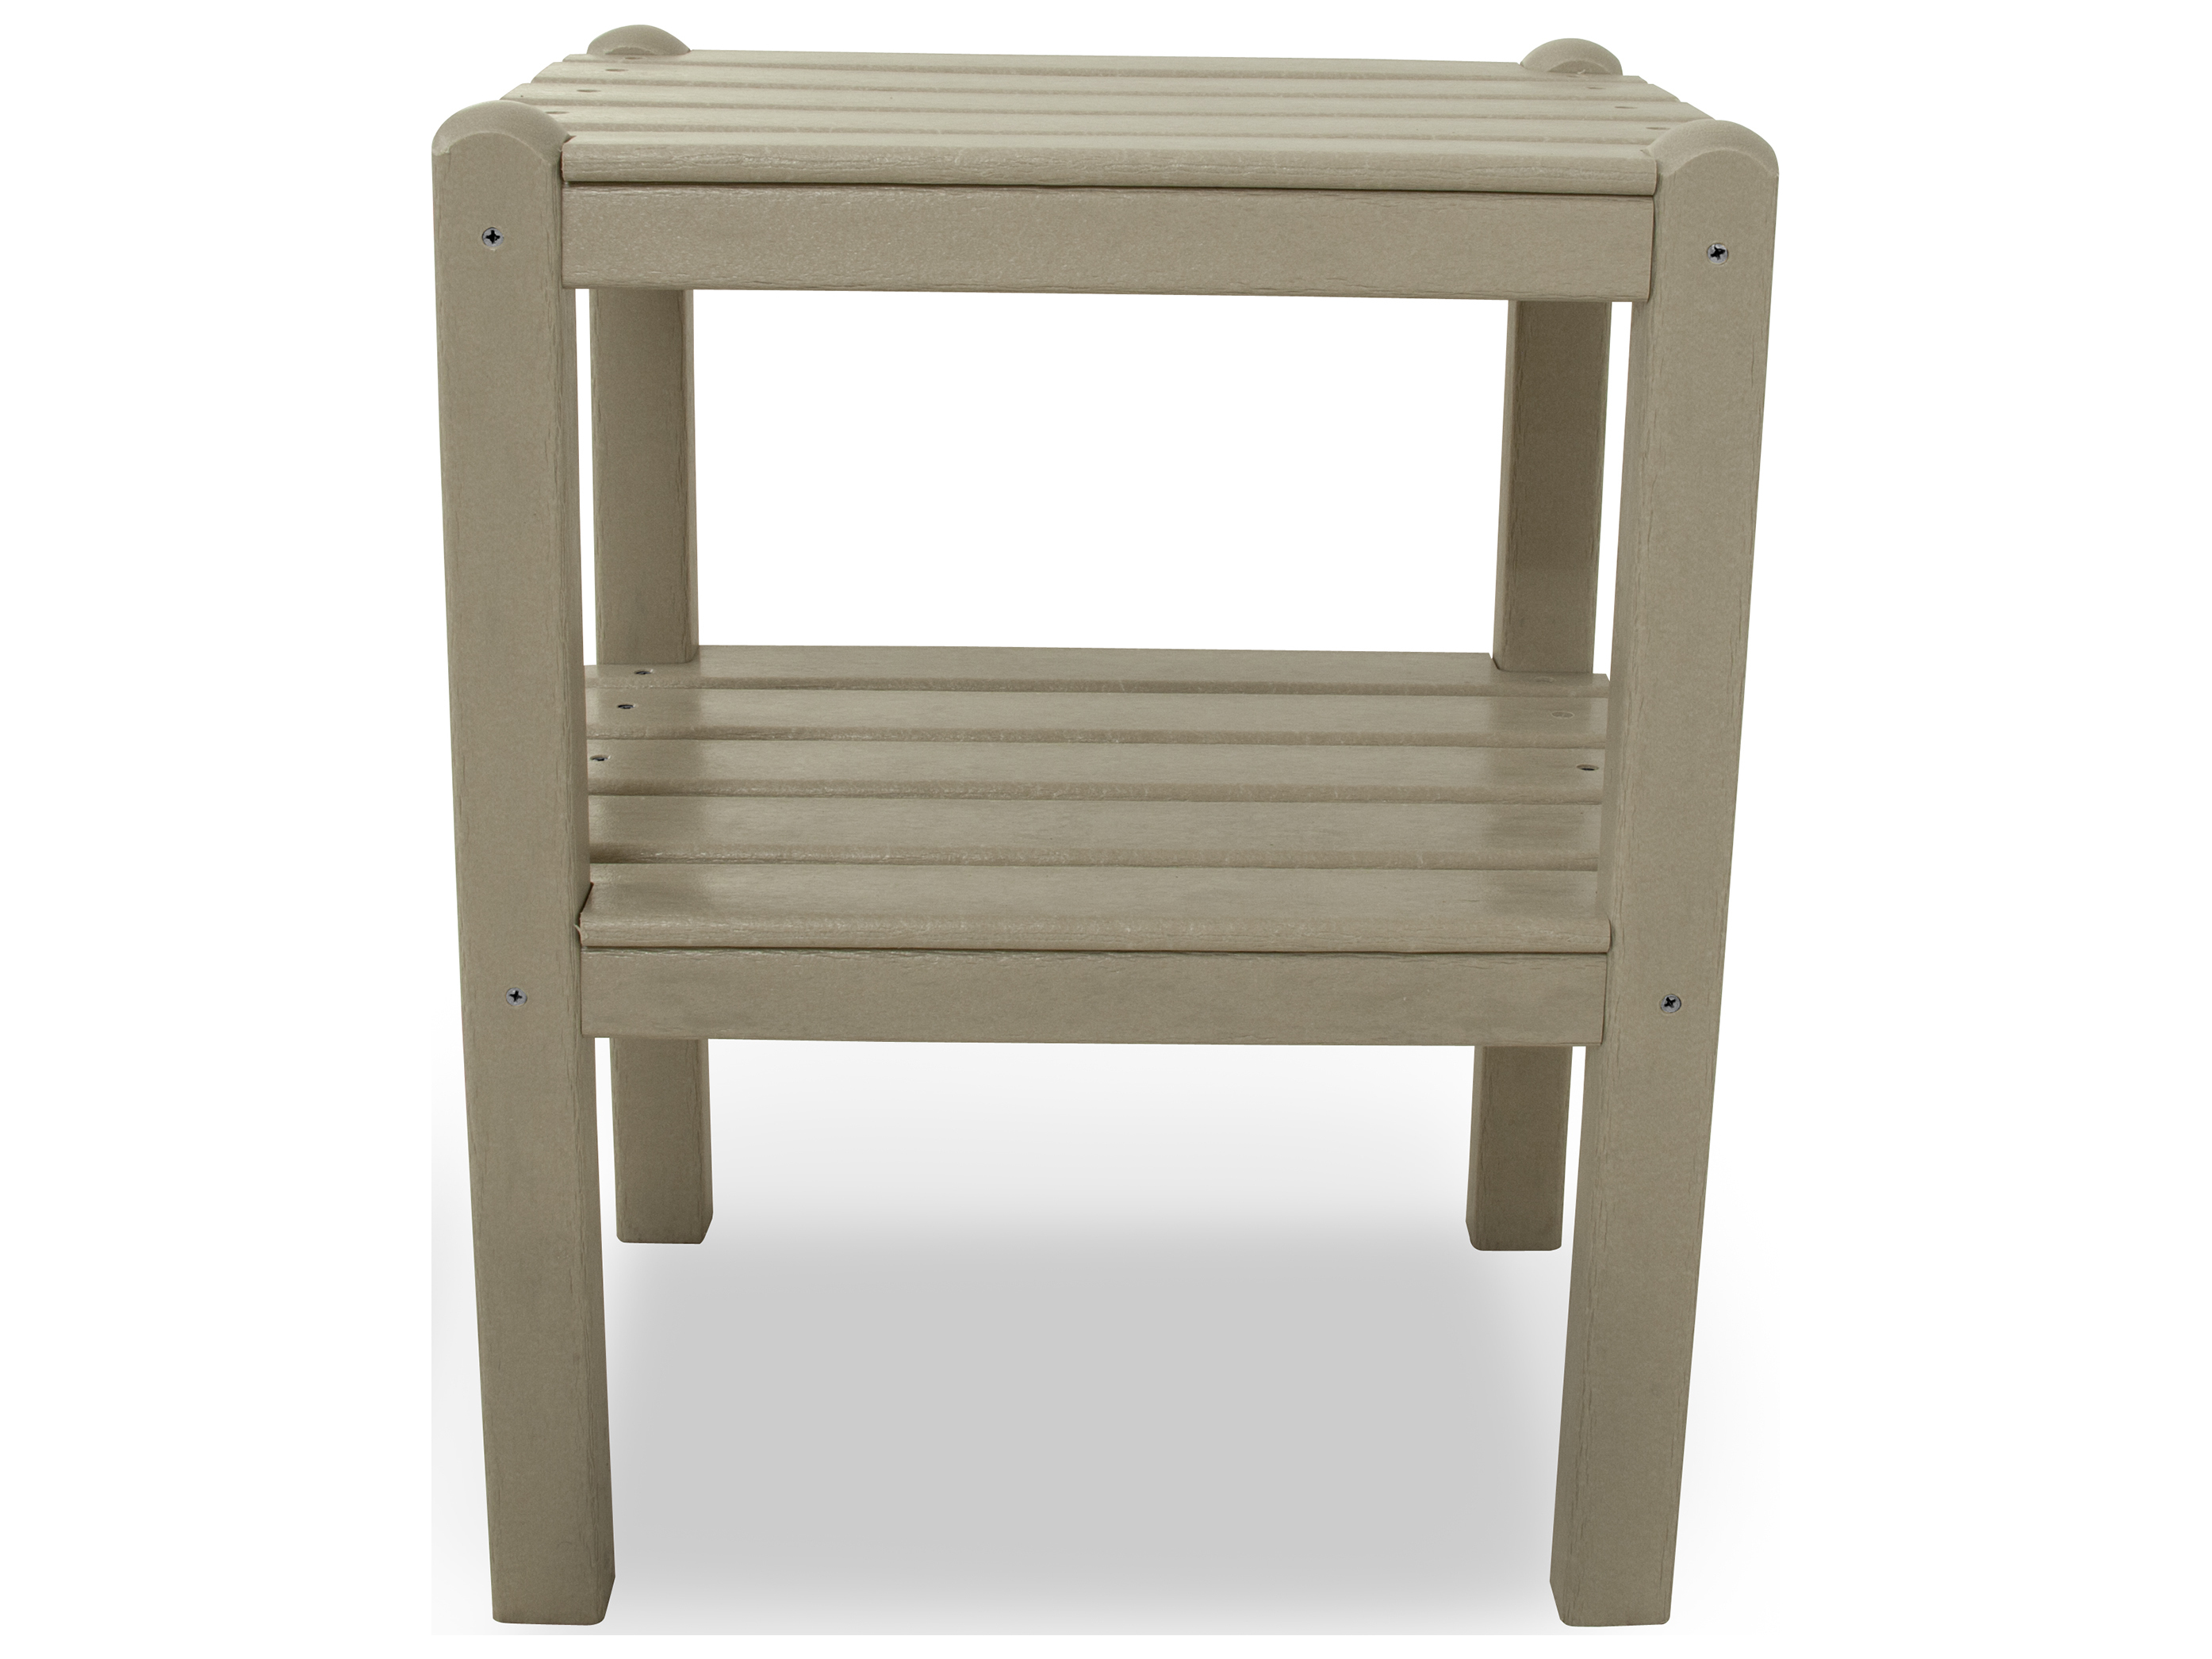 Polywood traditional recycled plastic 18 5 x 14 for 12 x 12 end table